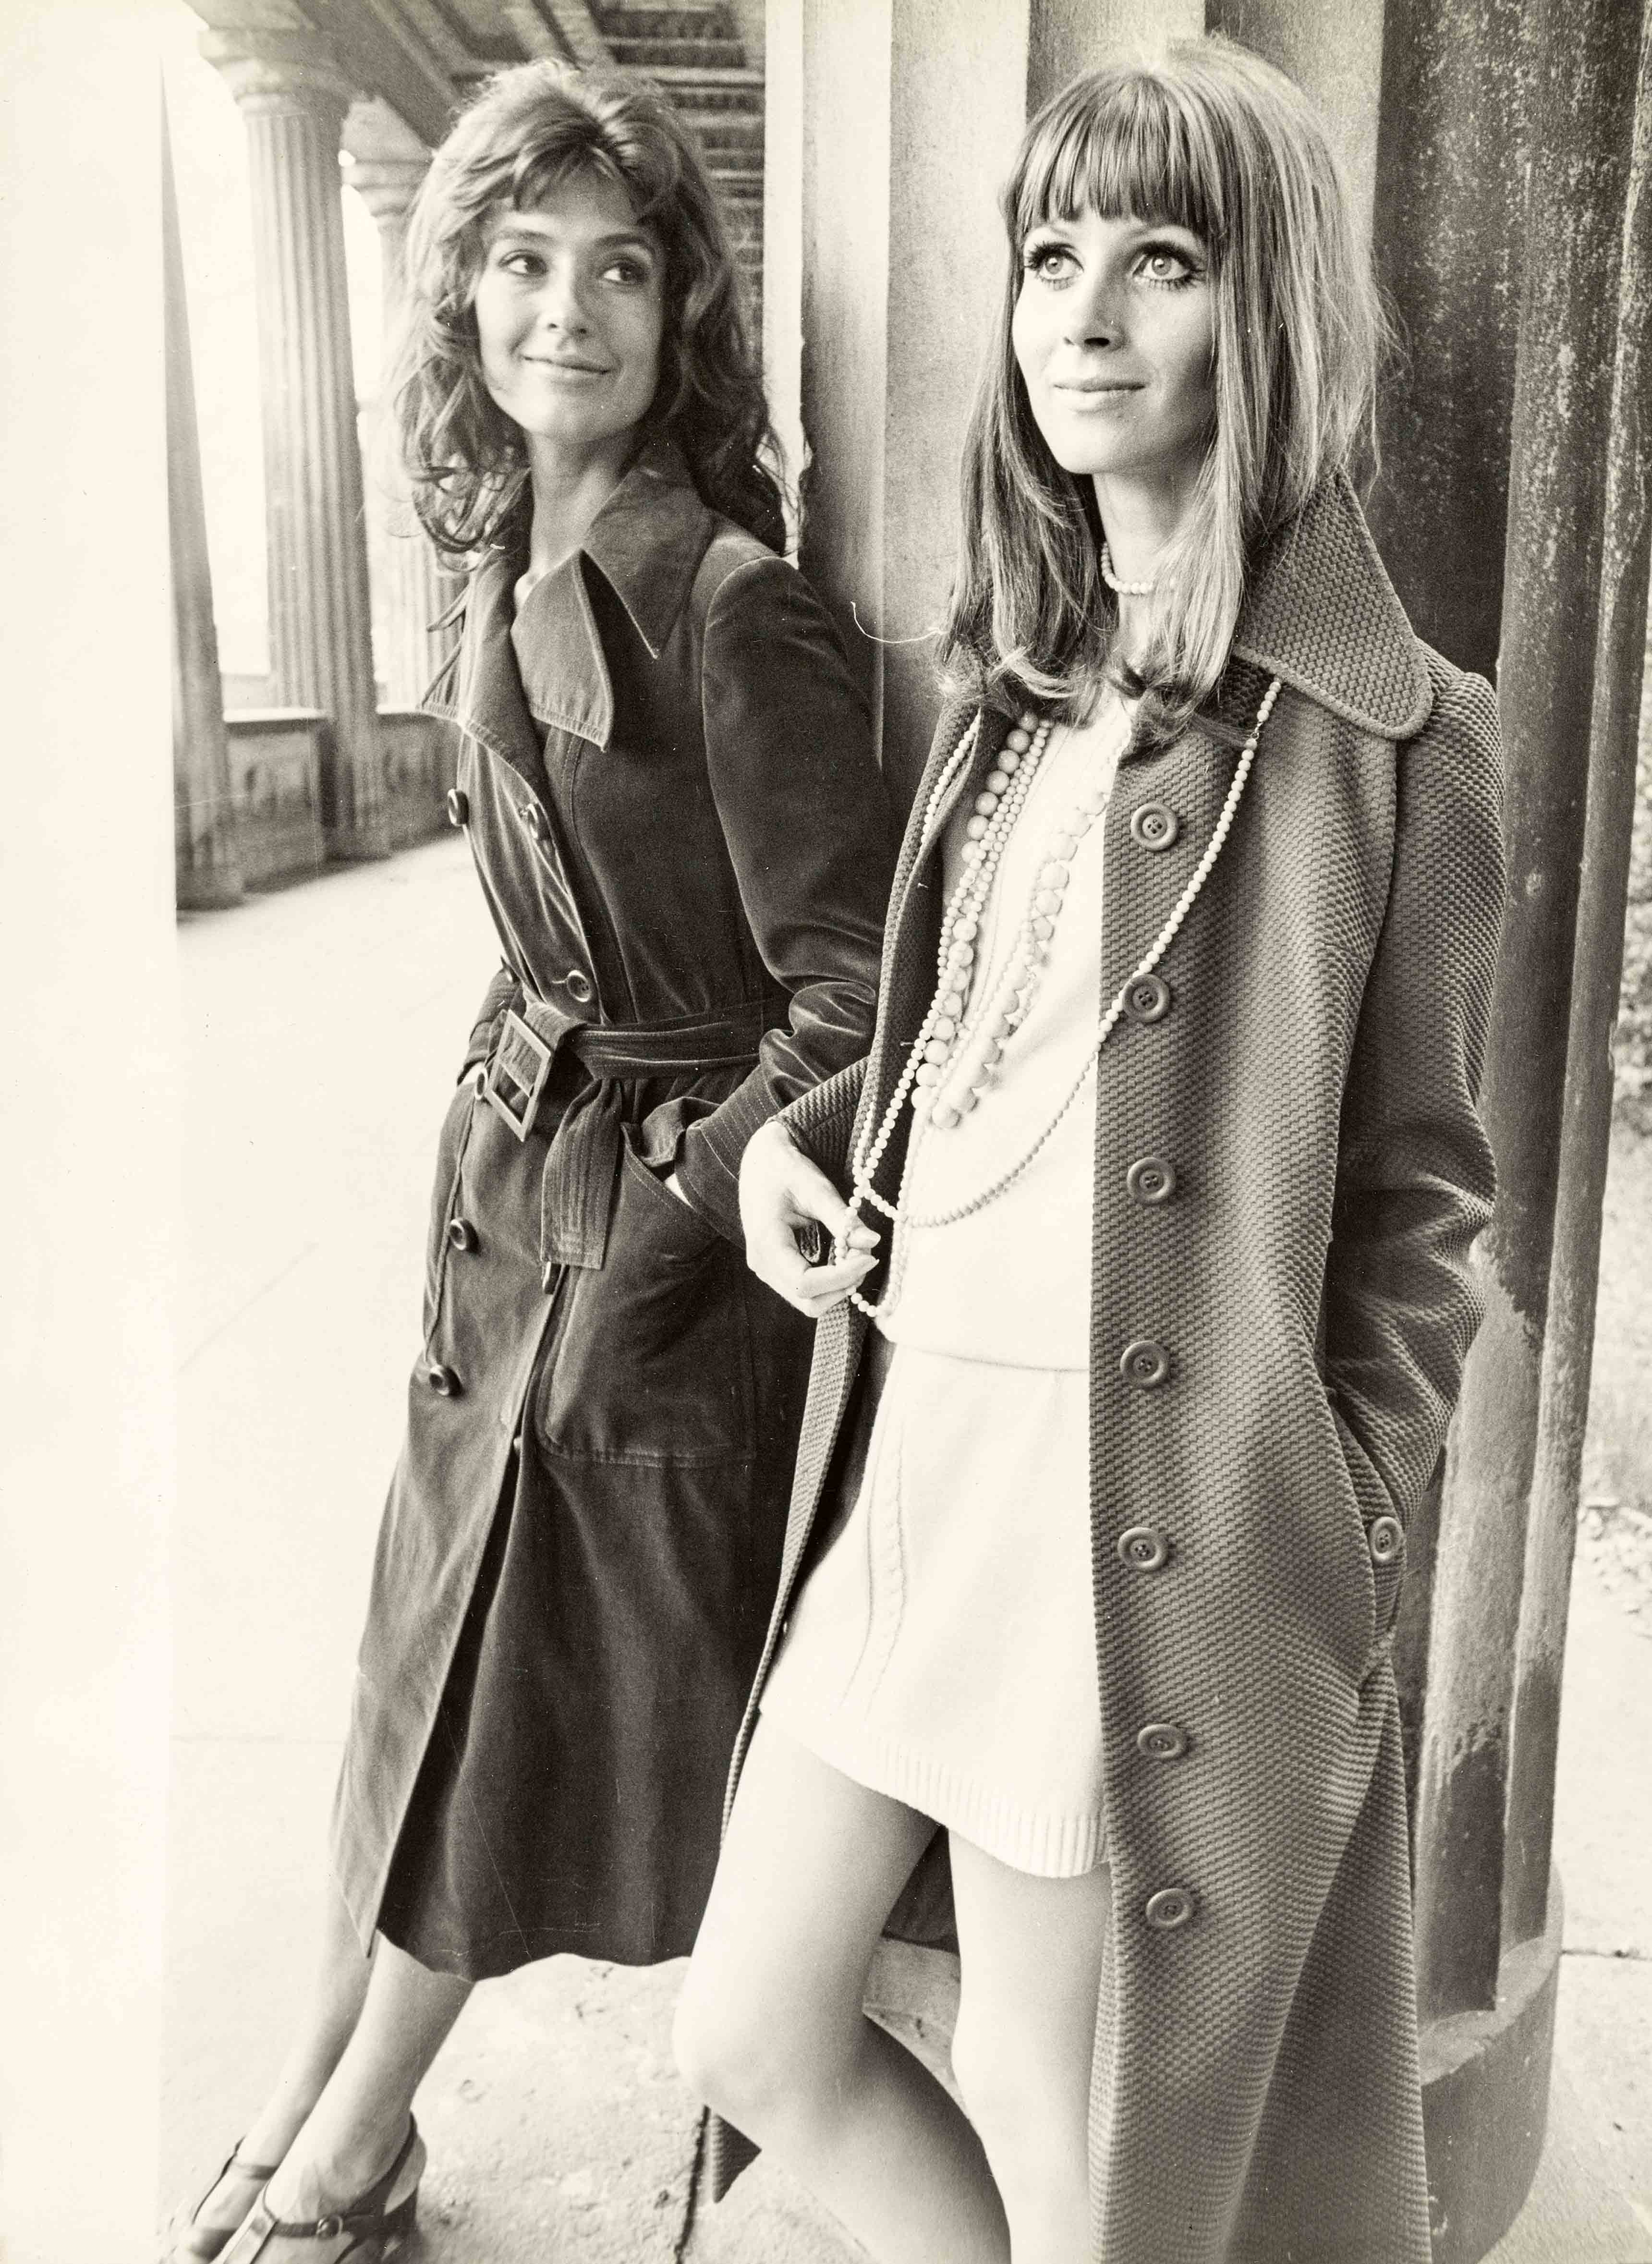 Short knee covering dresses with fitting coats | vintage print |15,4 x 11,4 in | models: German Fashion Institute | 'Sibylle', issue 6, 1971  Galerie Berinson, Berlin